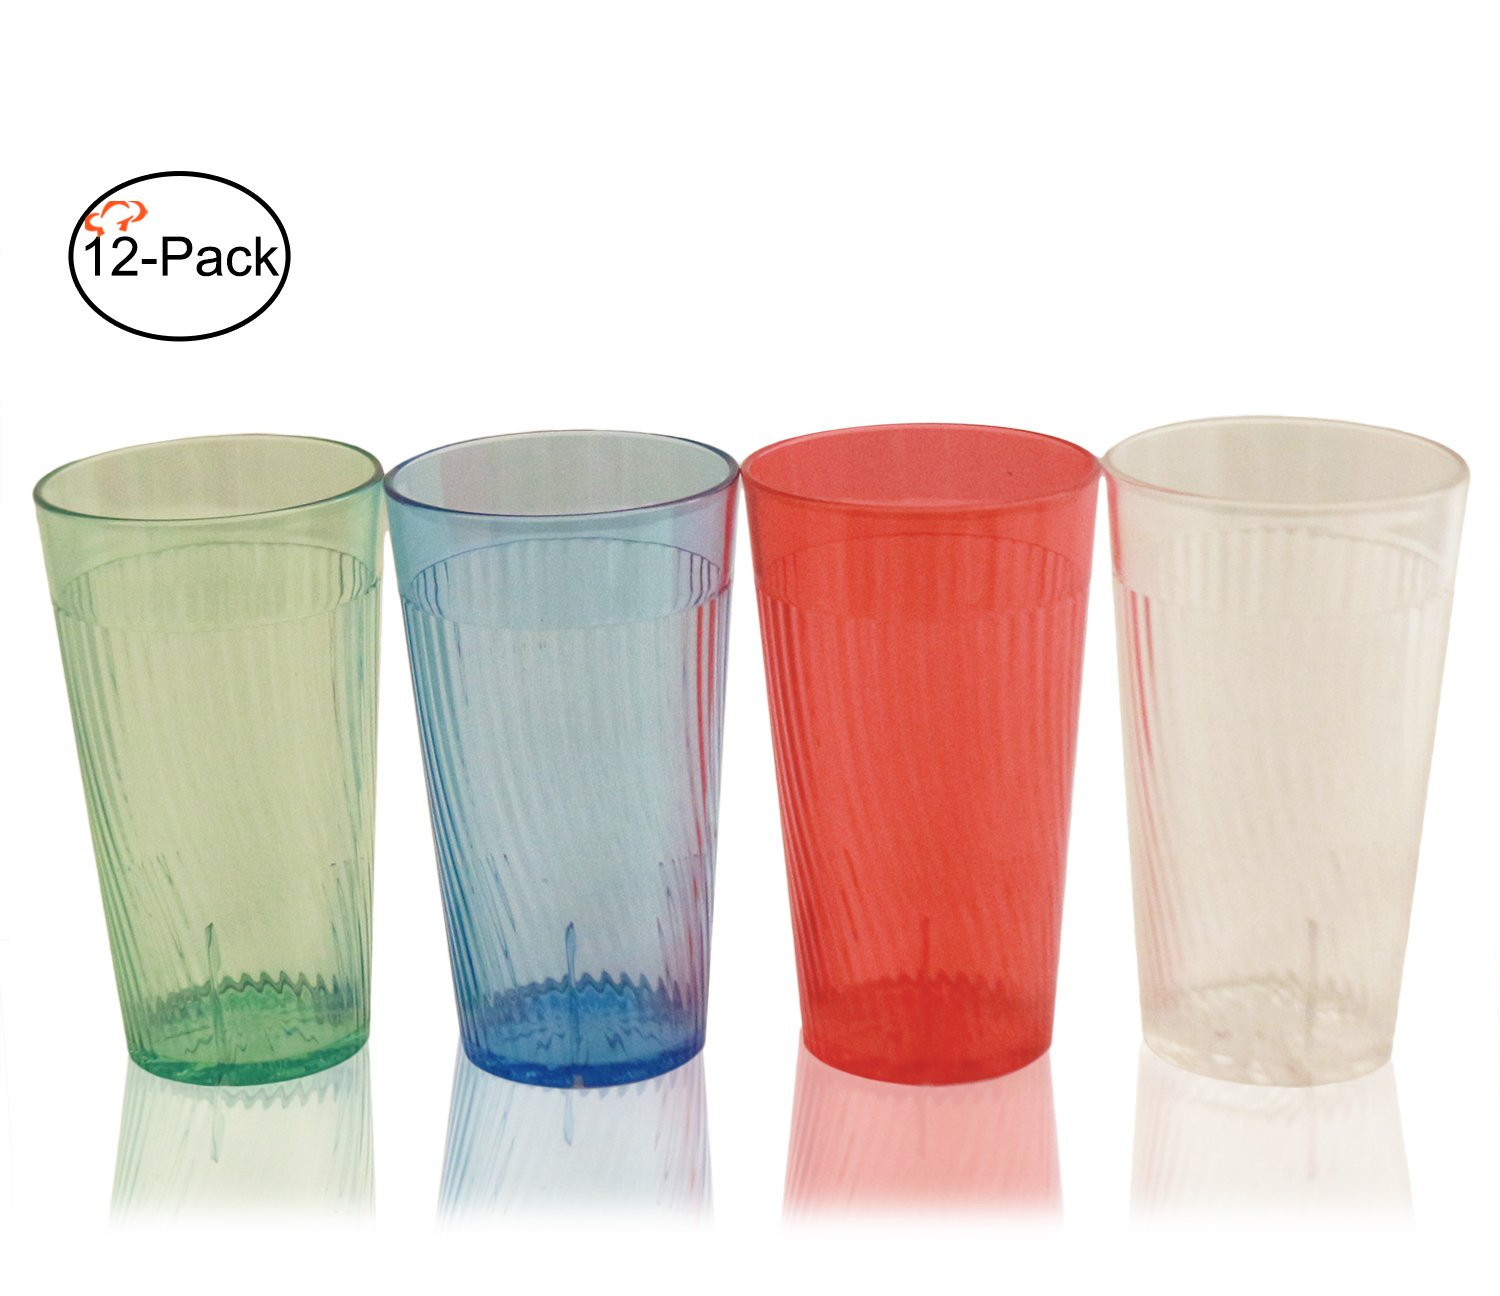 Tiger Chef 10 ounce Glass Like Break-Resistant Plastic Tumbler Set, Exclusive Starburst Design Stackable Restaurant Beverage Cup, Assorted Colors (12-Pack)